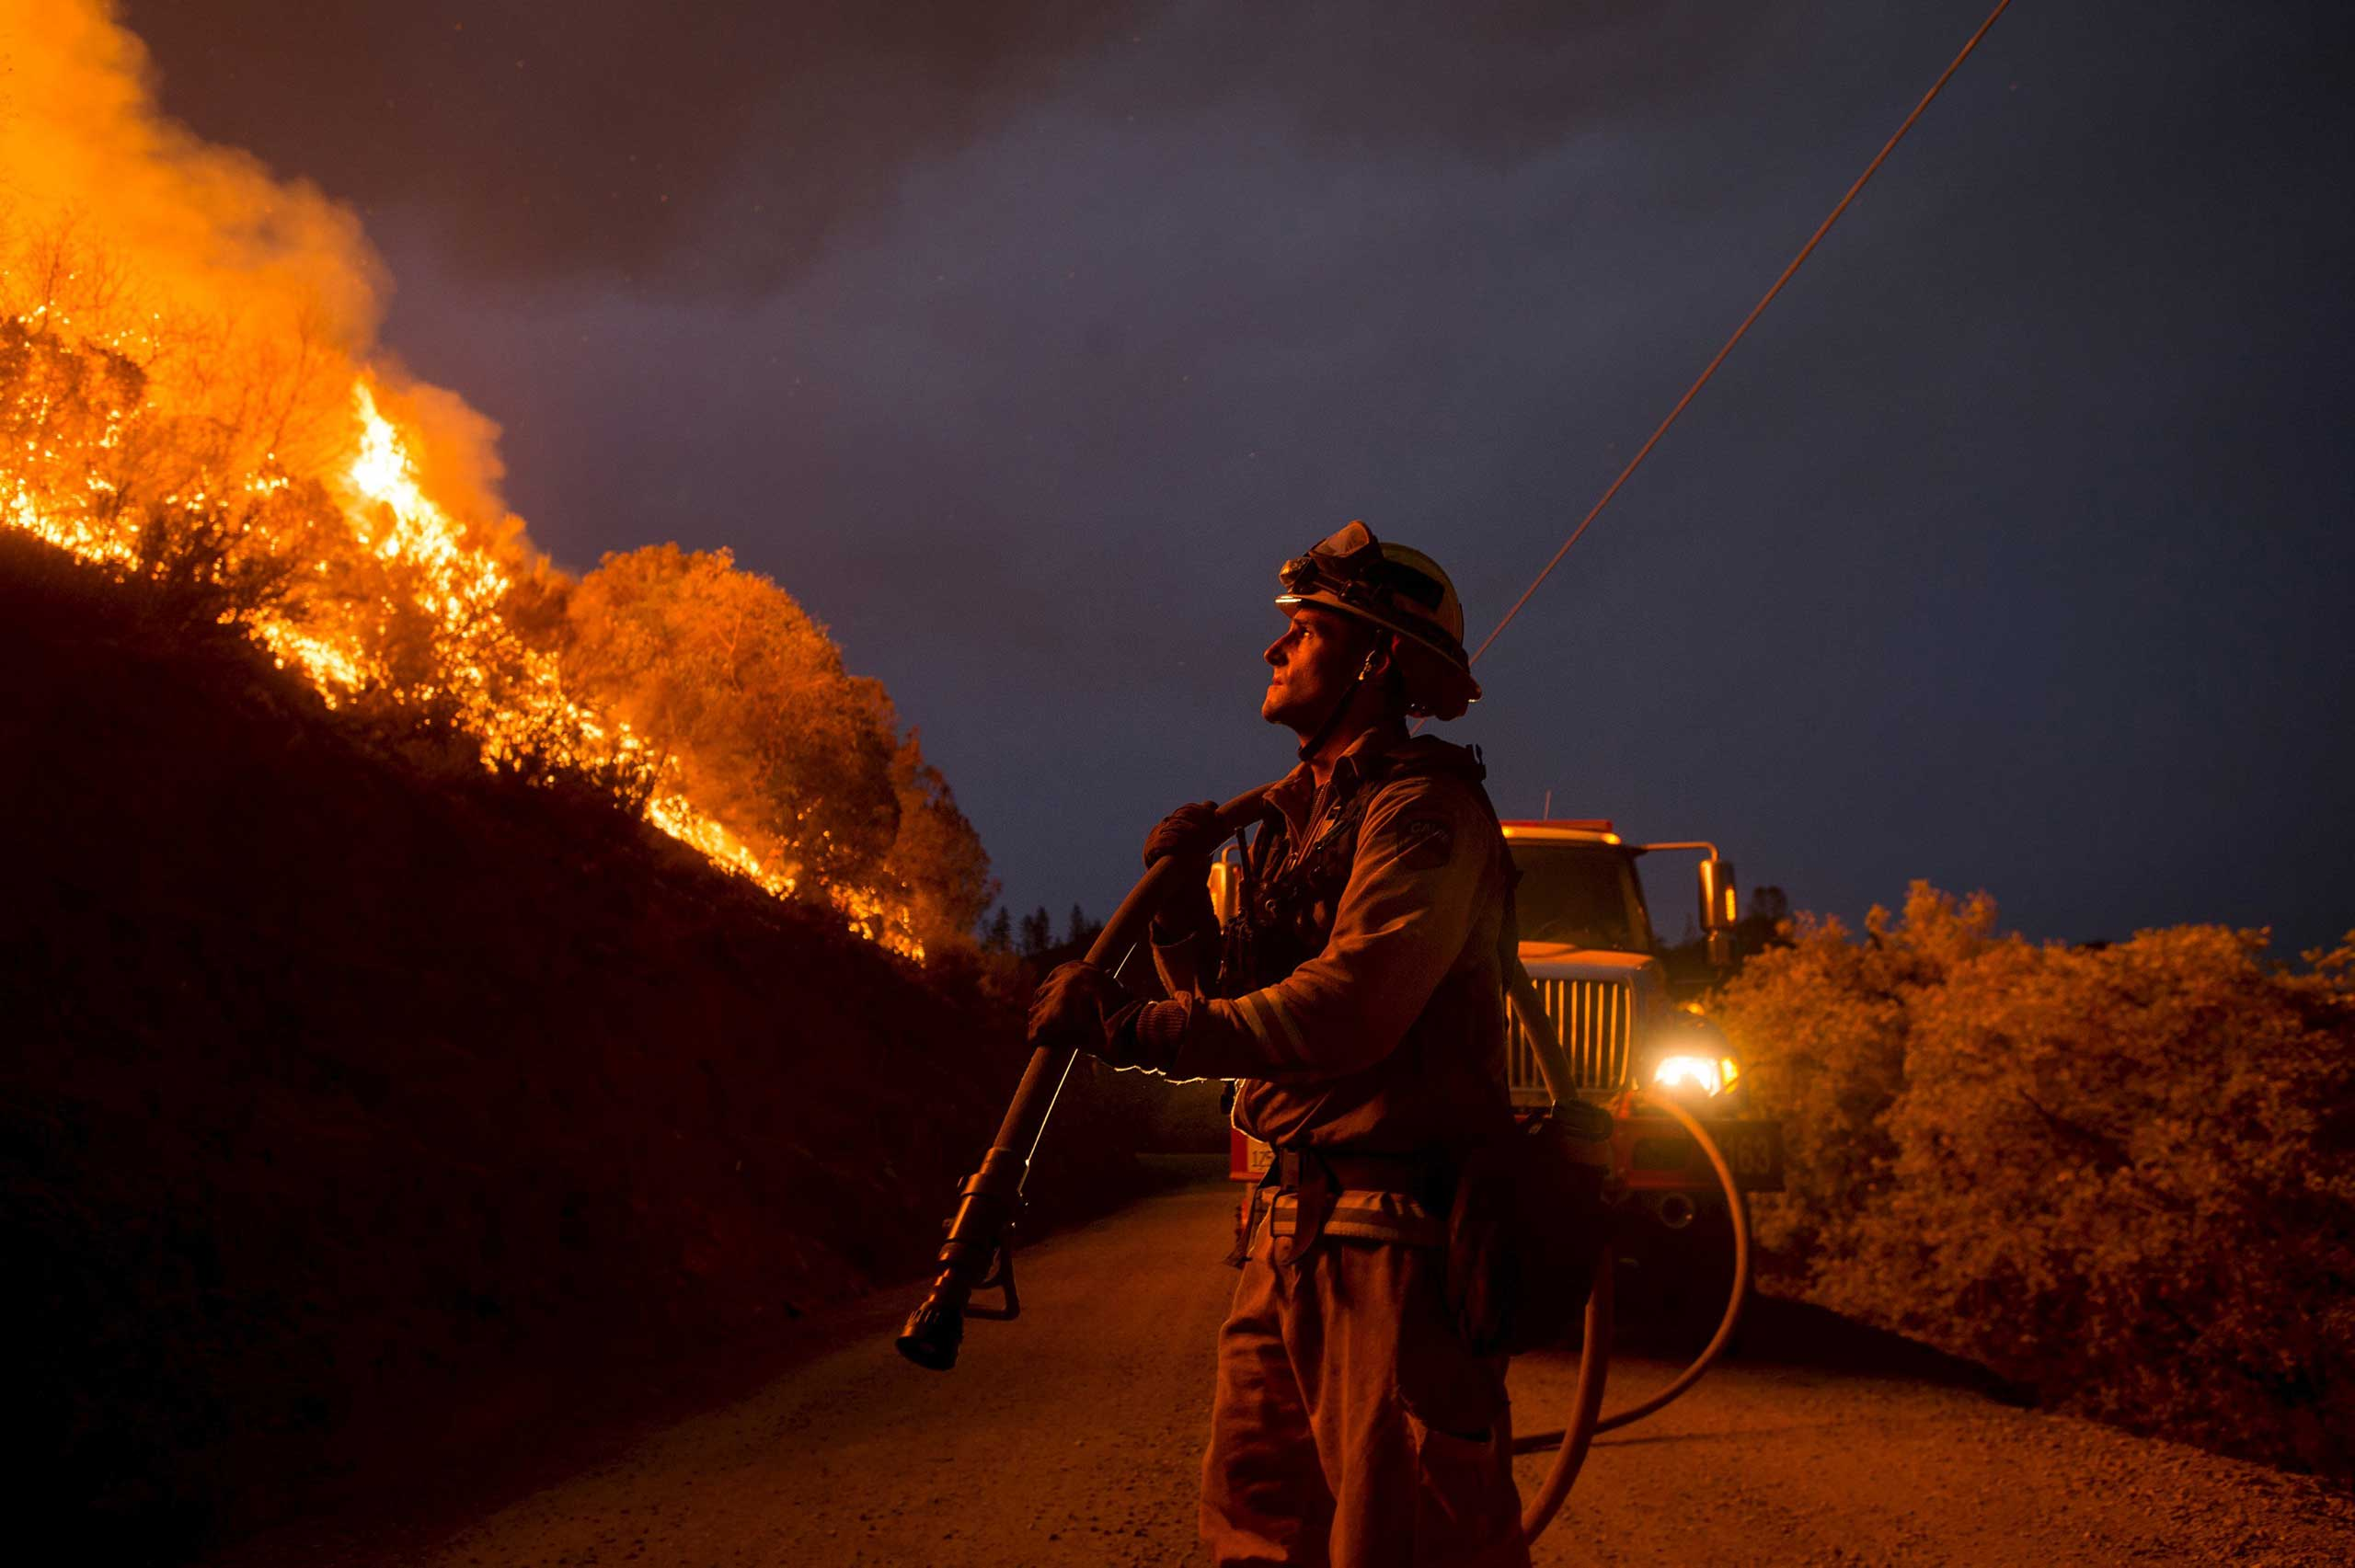 Firefighter Andrew Dodds monitors a backfire while battling the Butte fire near San Andreas, California September 12, 2015.